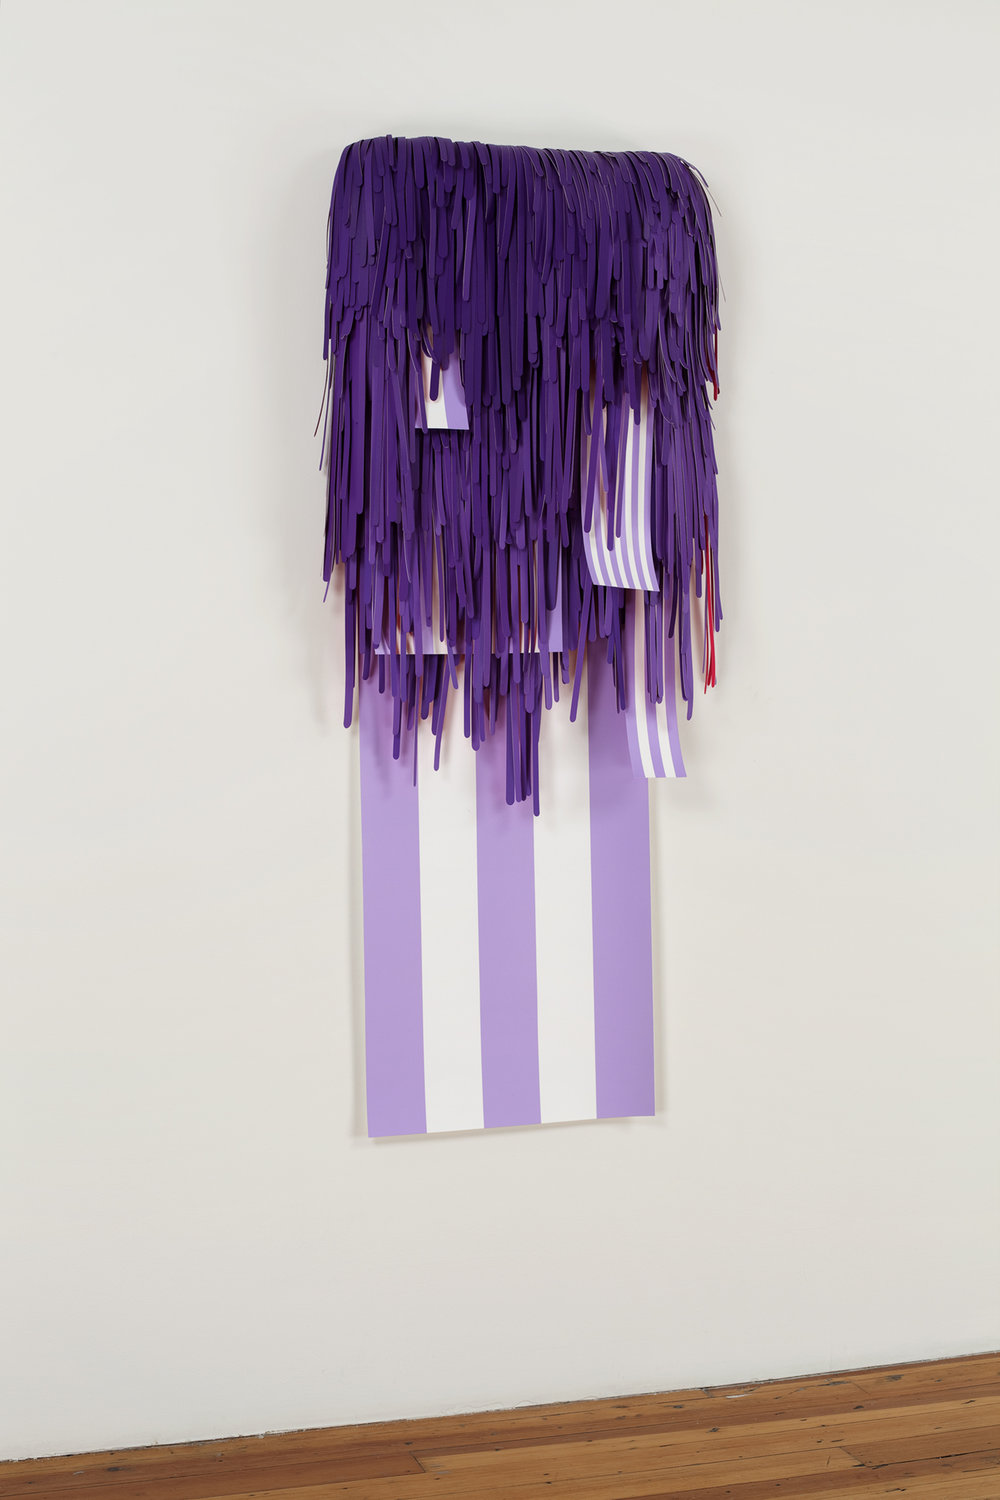 Synchronicity Spoken Here (Purple Monochrome with Junk in the Trunk/ L.H.O.O.Q. with Maxi Stripes) , 2009, acrylic on cut paper, paper-mâché, plastic, foam, 56 x 24 x 5 inches